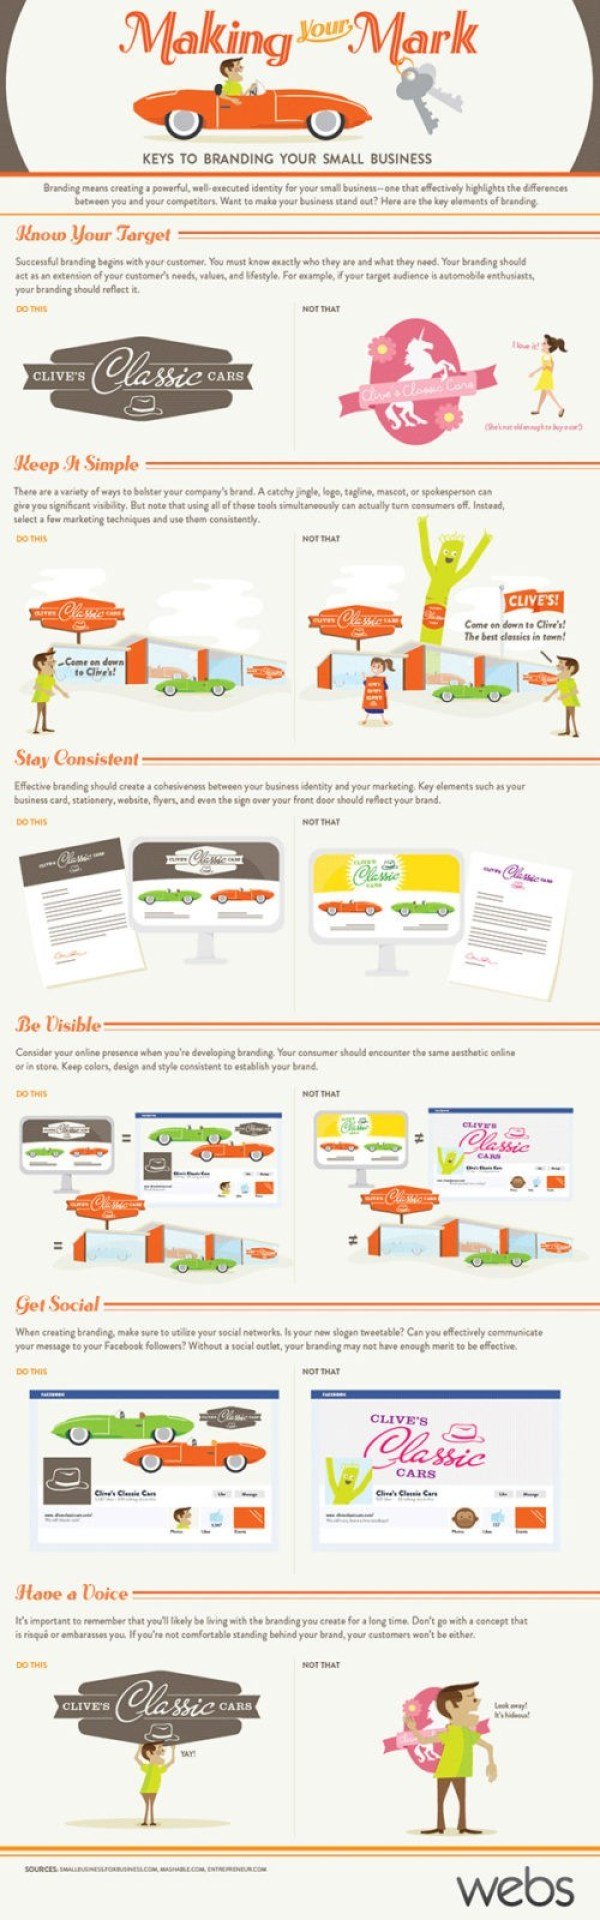 6-Simple-Steps-to-Small-Business-Branding